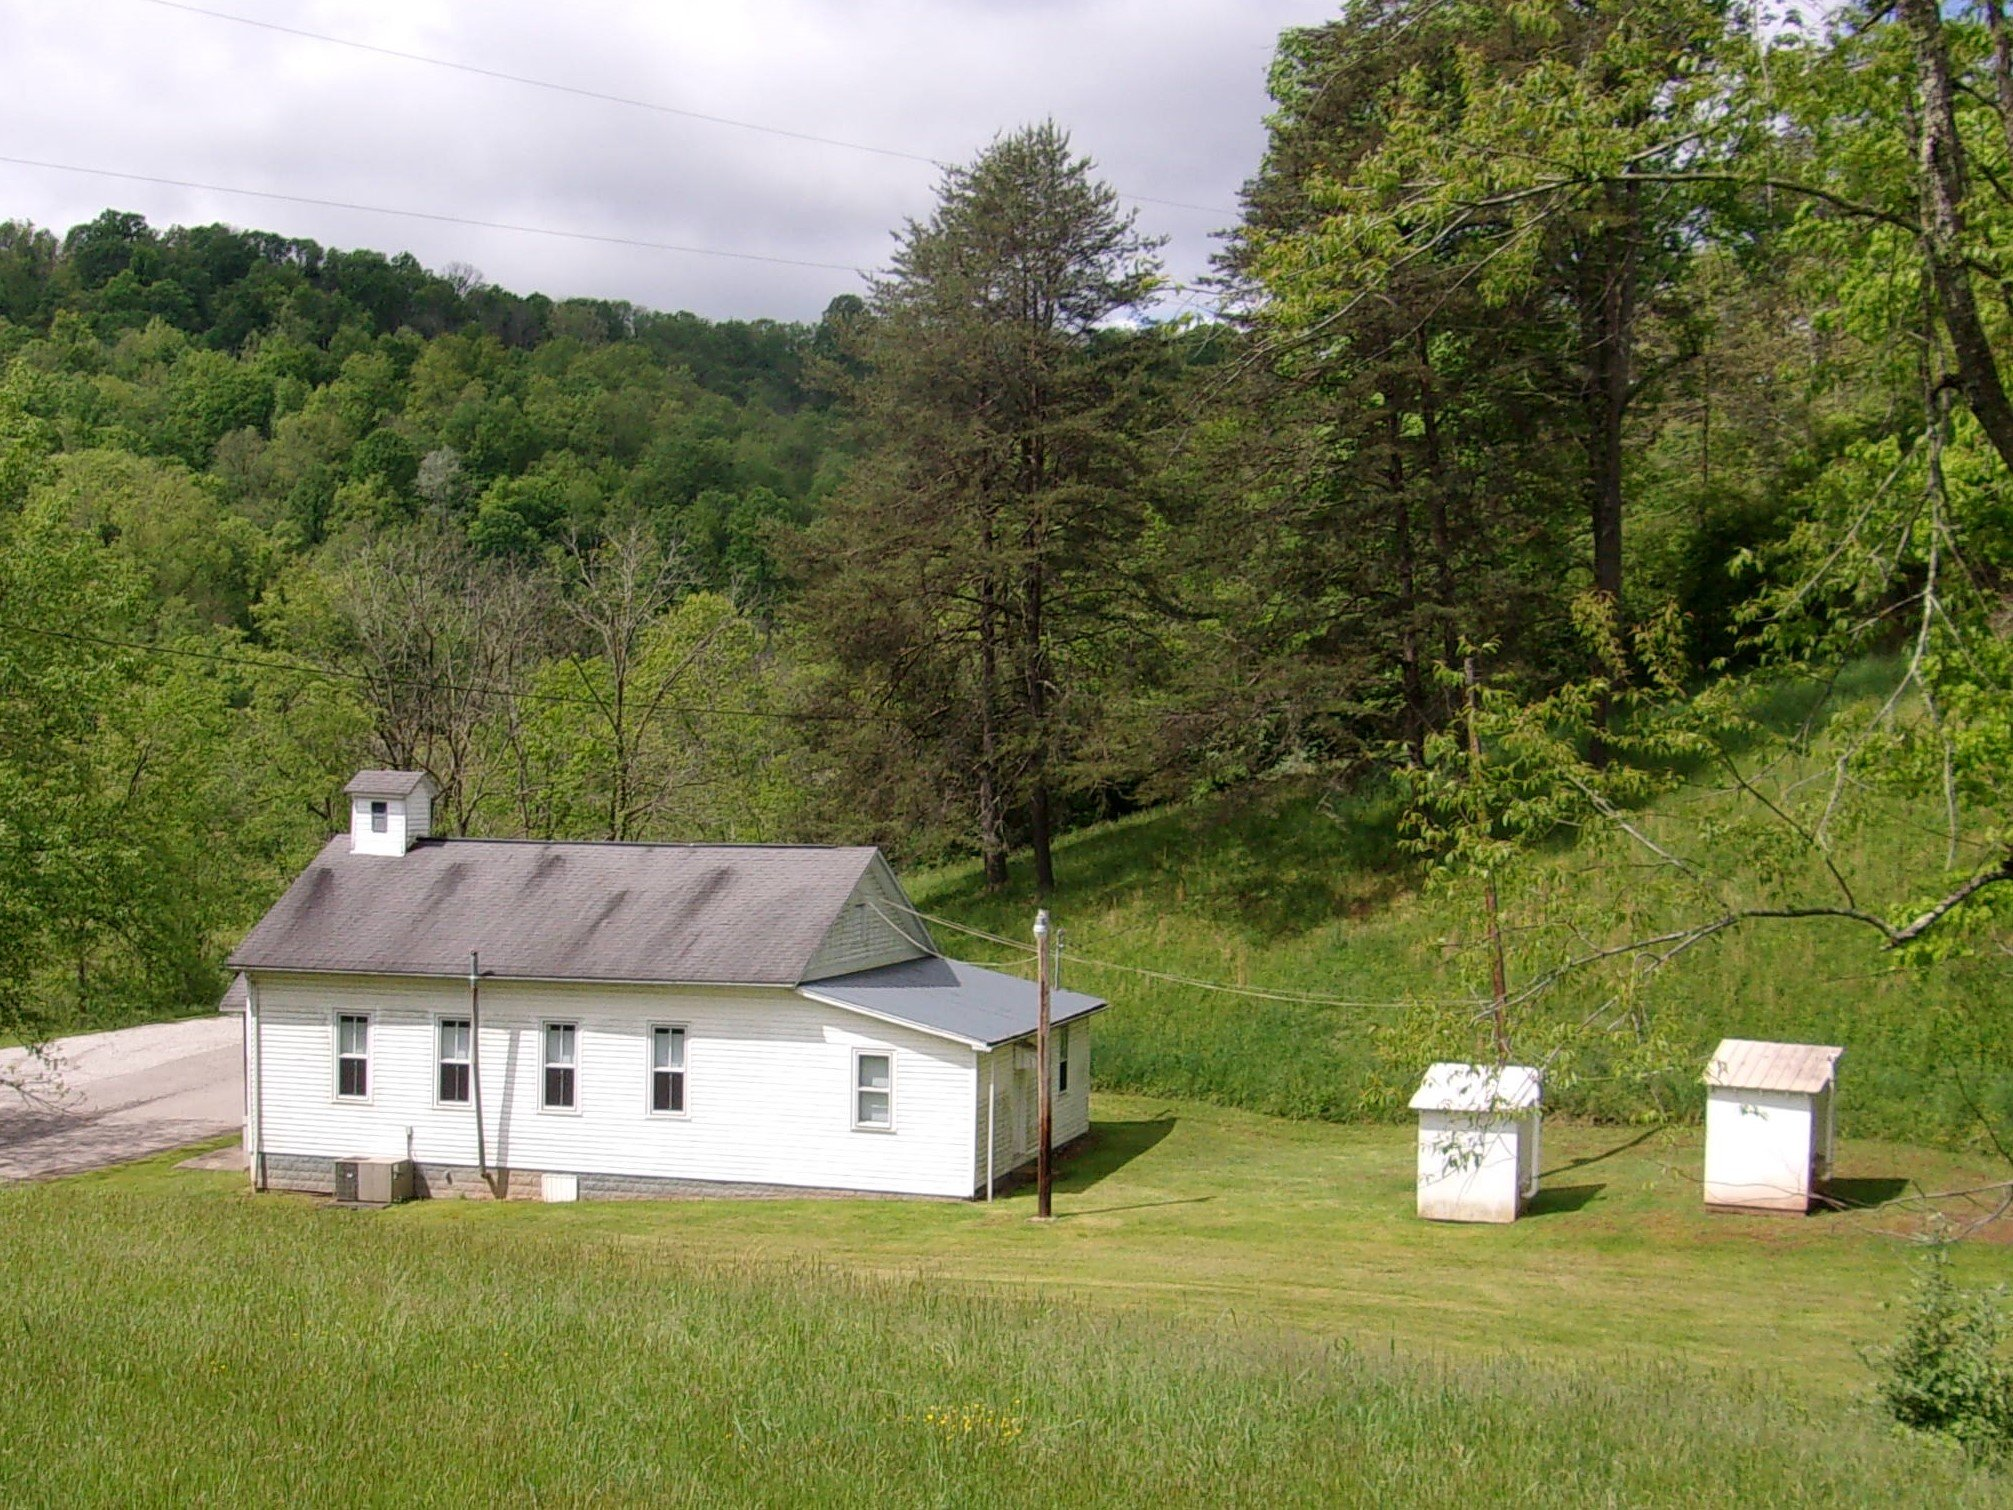 Dale Church of Christ as it appears today. Privies still in use as there is no indoor plumbing.